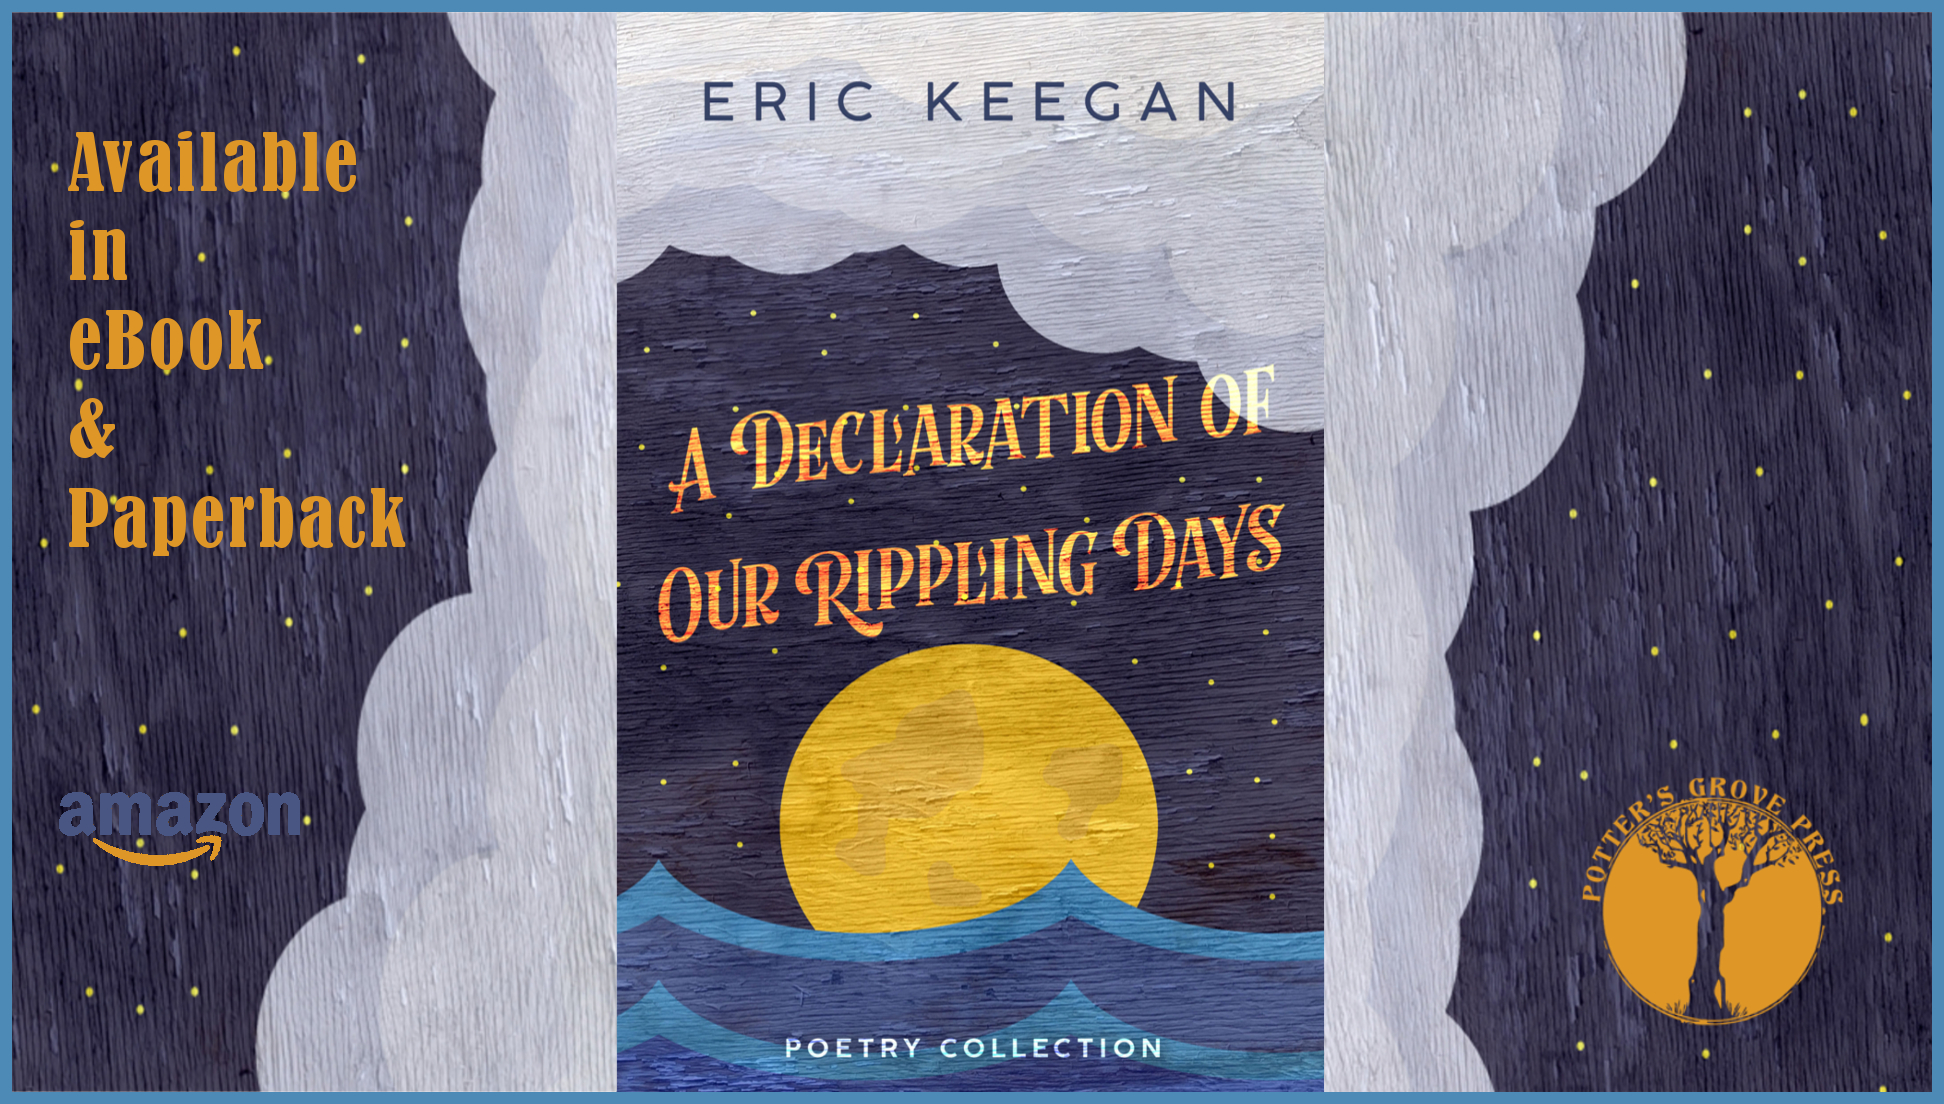 A Declaration of Our Rippling Days by Eric Keegan